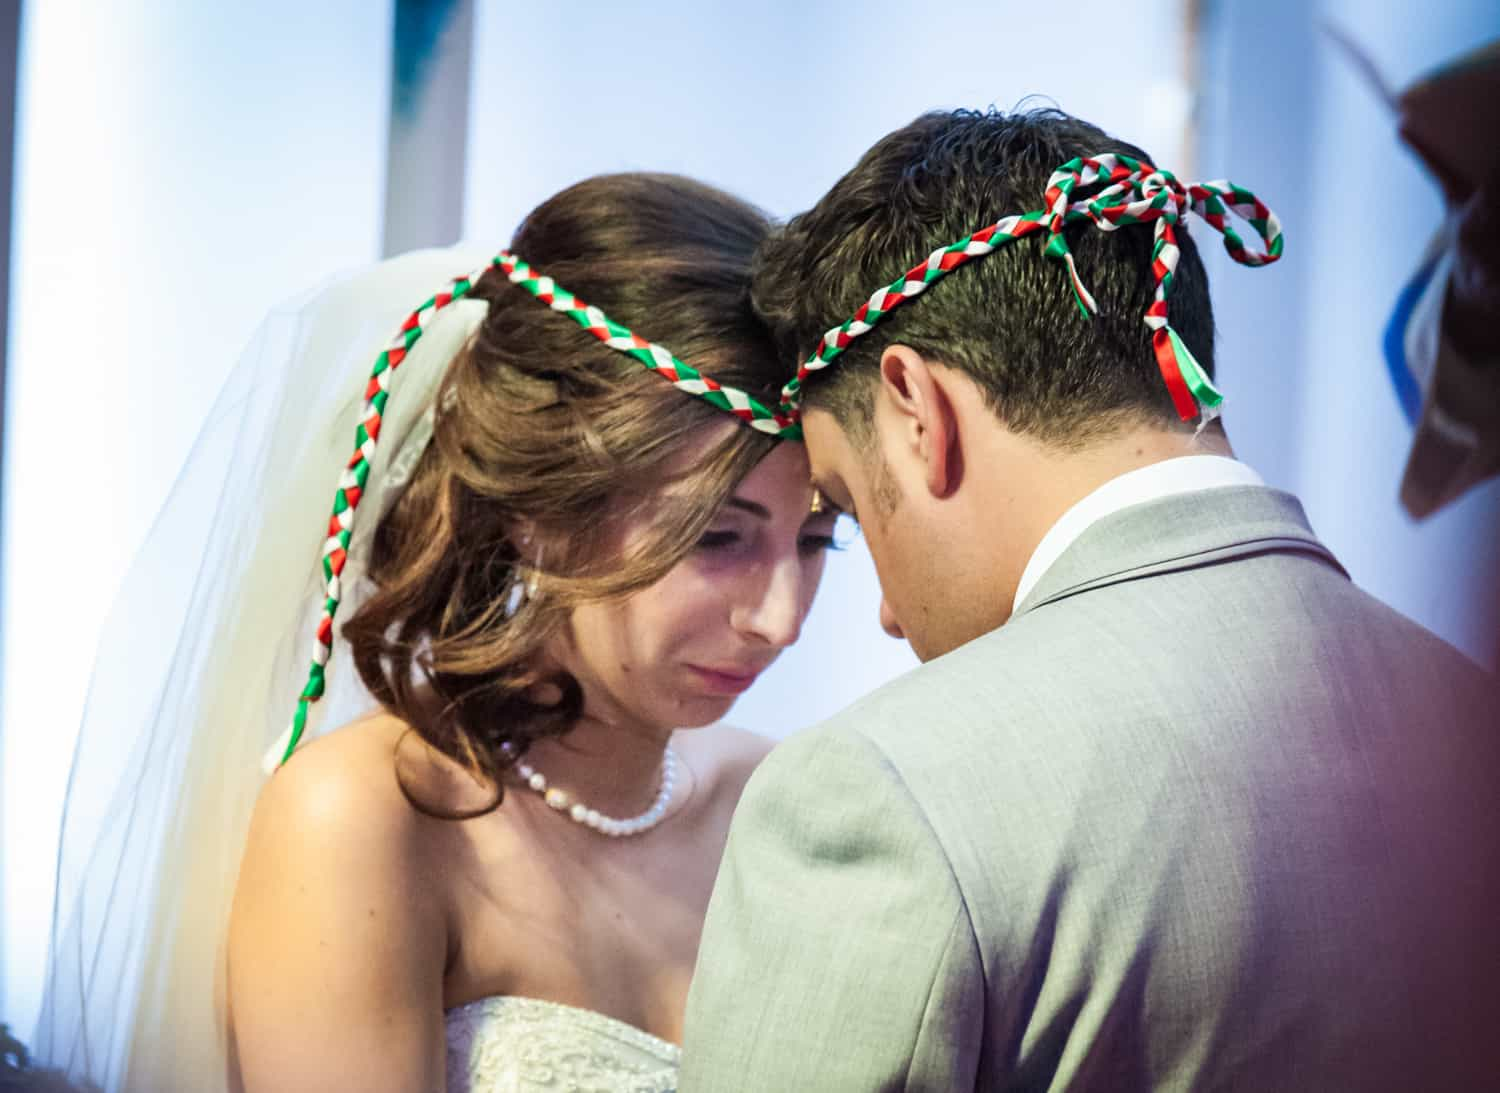 Bride and groom touching foreheads in Eastern Orthodox wedding ceremony